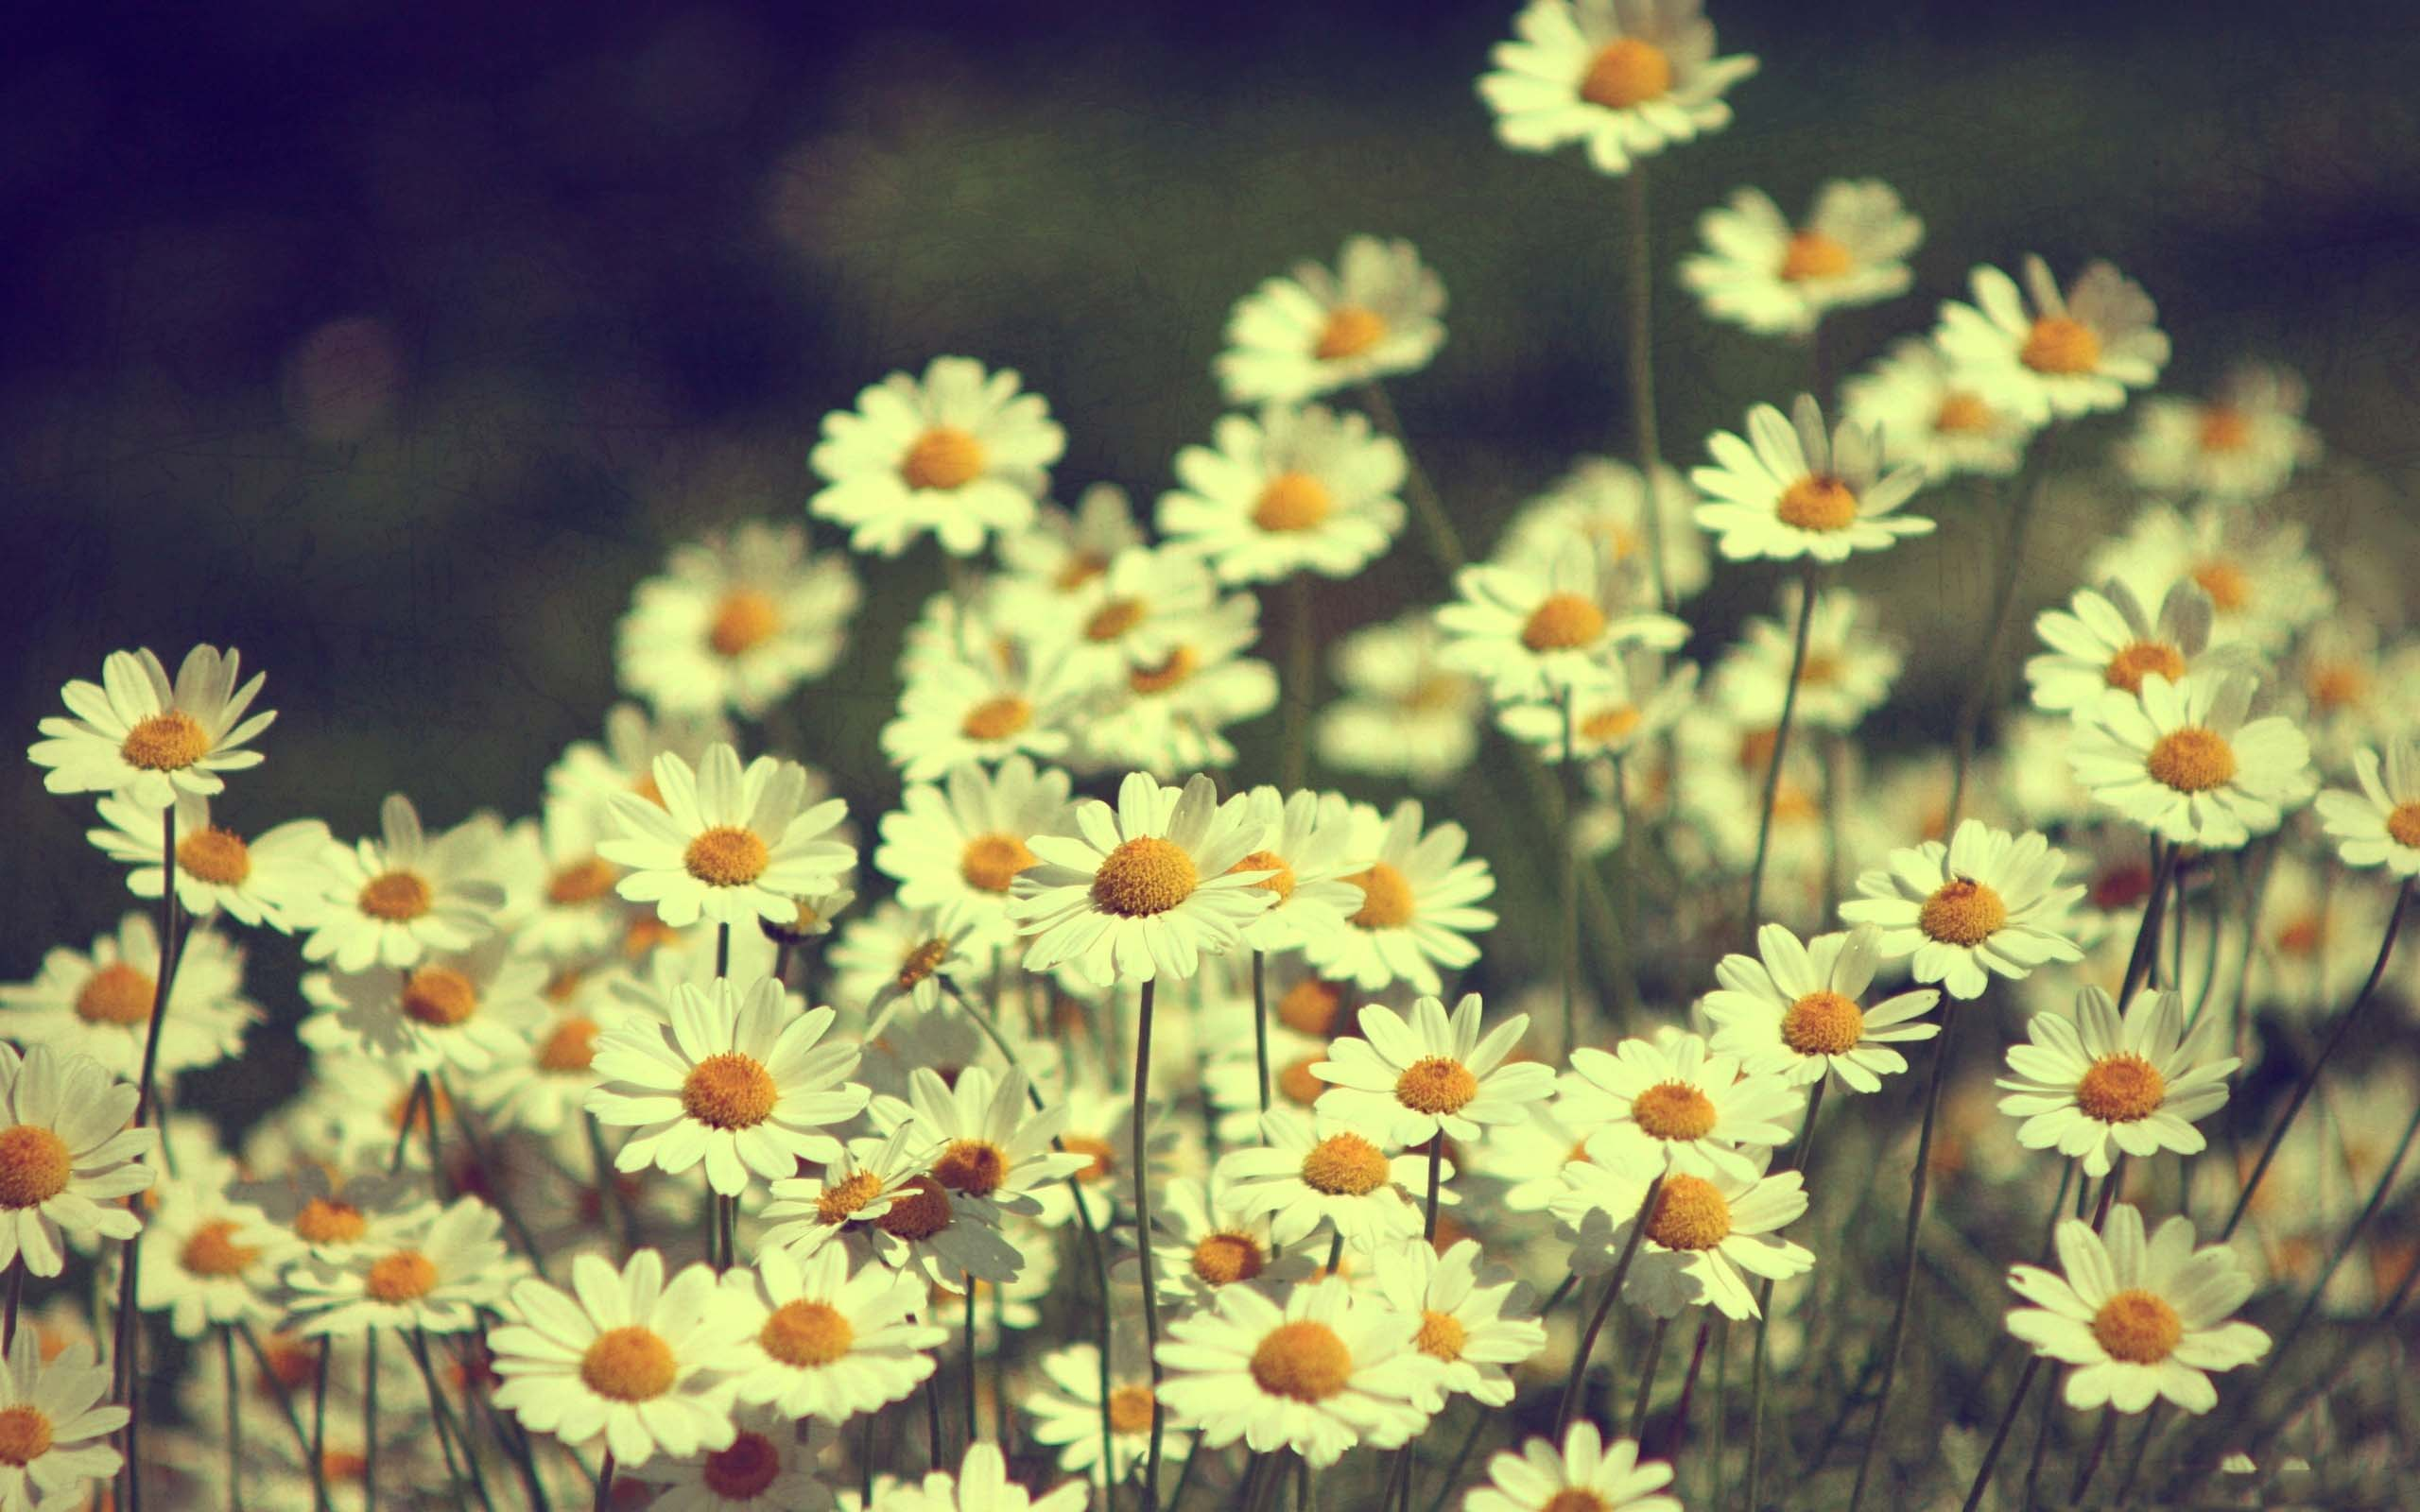 birthday and wedding flower of daisies images free